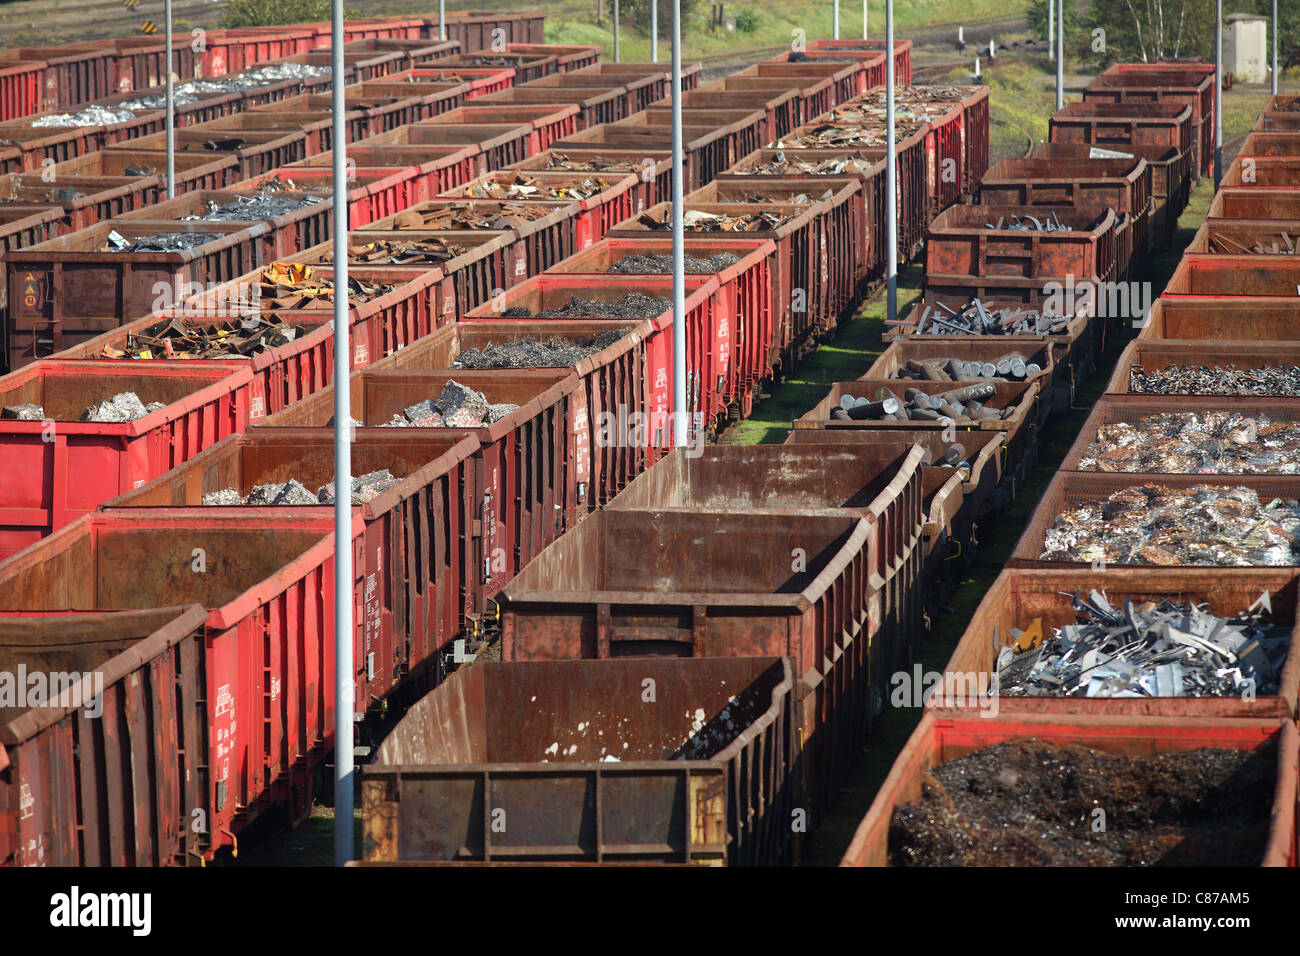 Freight depot, freight yard. Scrap metal in railway wagons, for melt down in a steelworks, recycling of old metal. Stock Photo